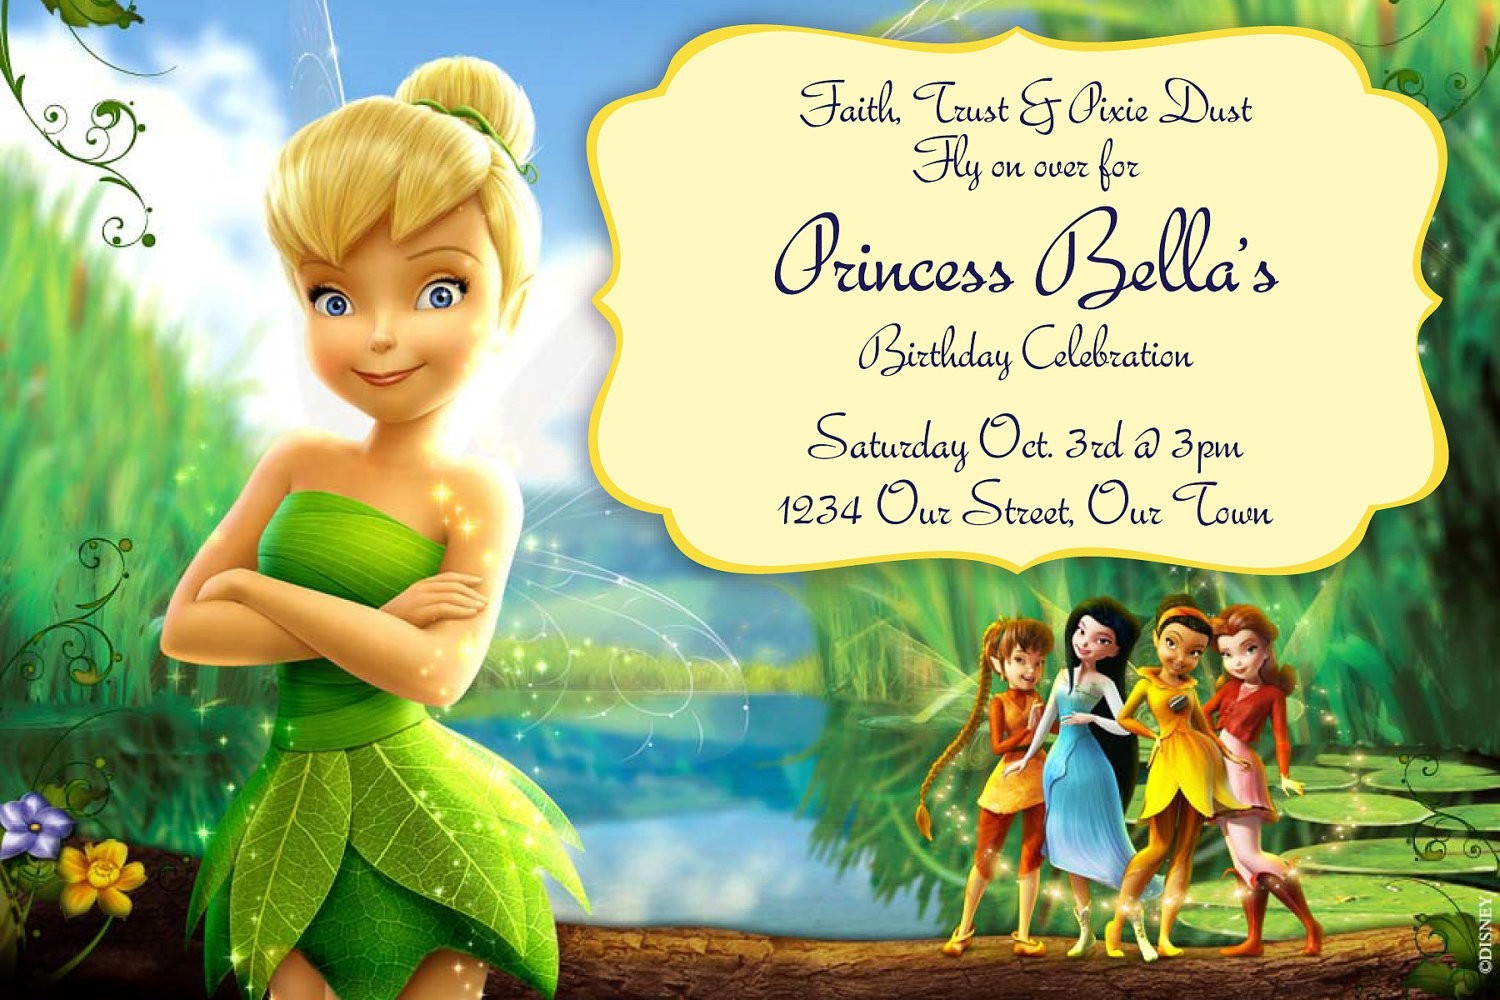 tinkerbell birthday invitations printable ; tinkerbell-birthday-invitations-for-simple-invitations-of-your-Birthday-Invitation-Templates-using-fetching-design-ideas-3